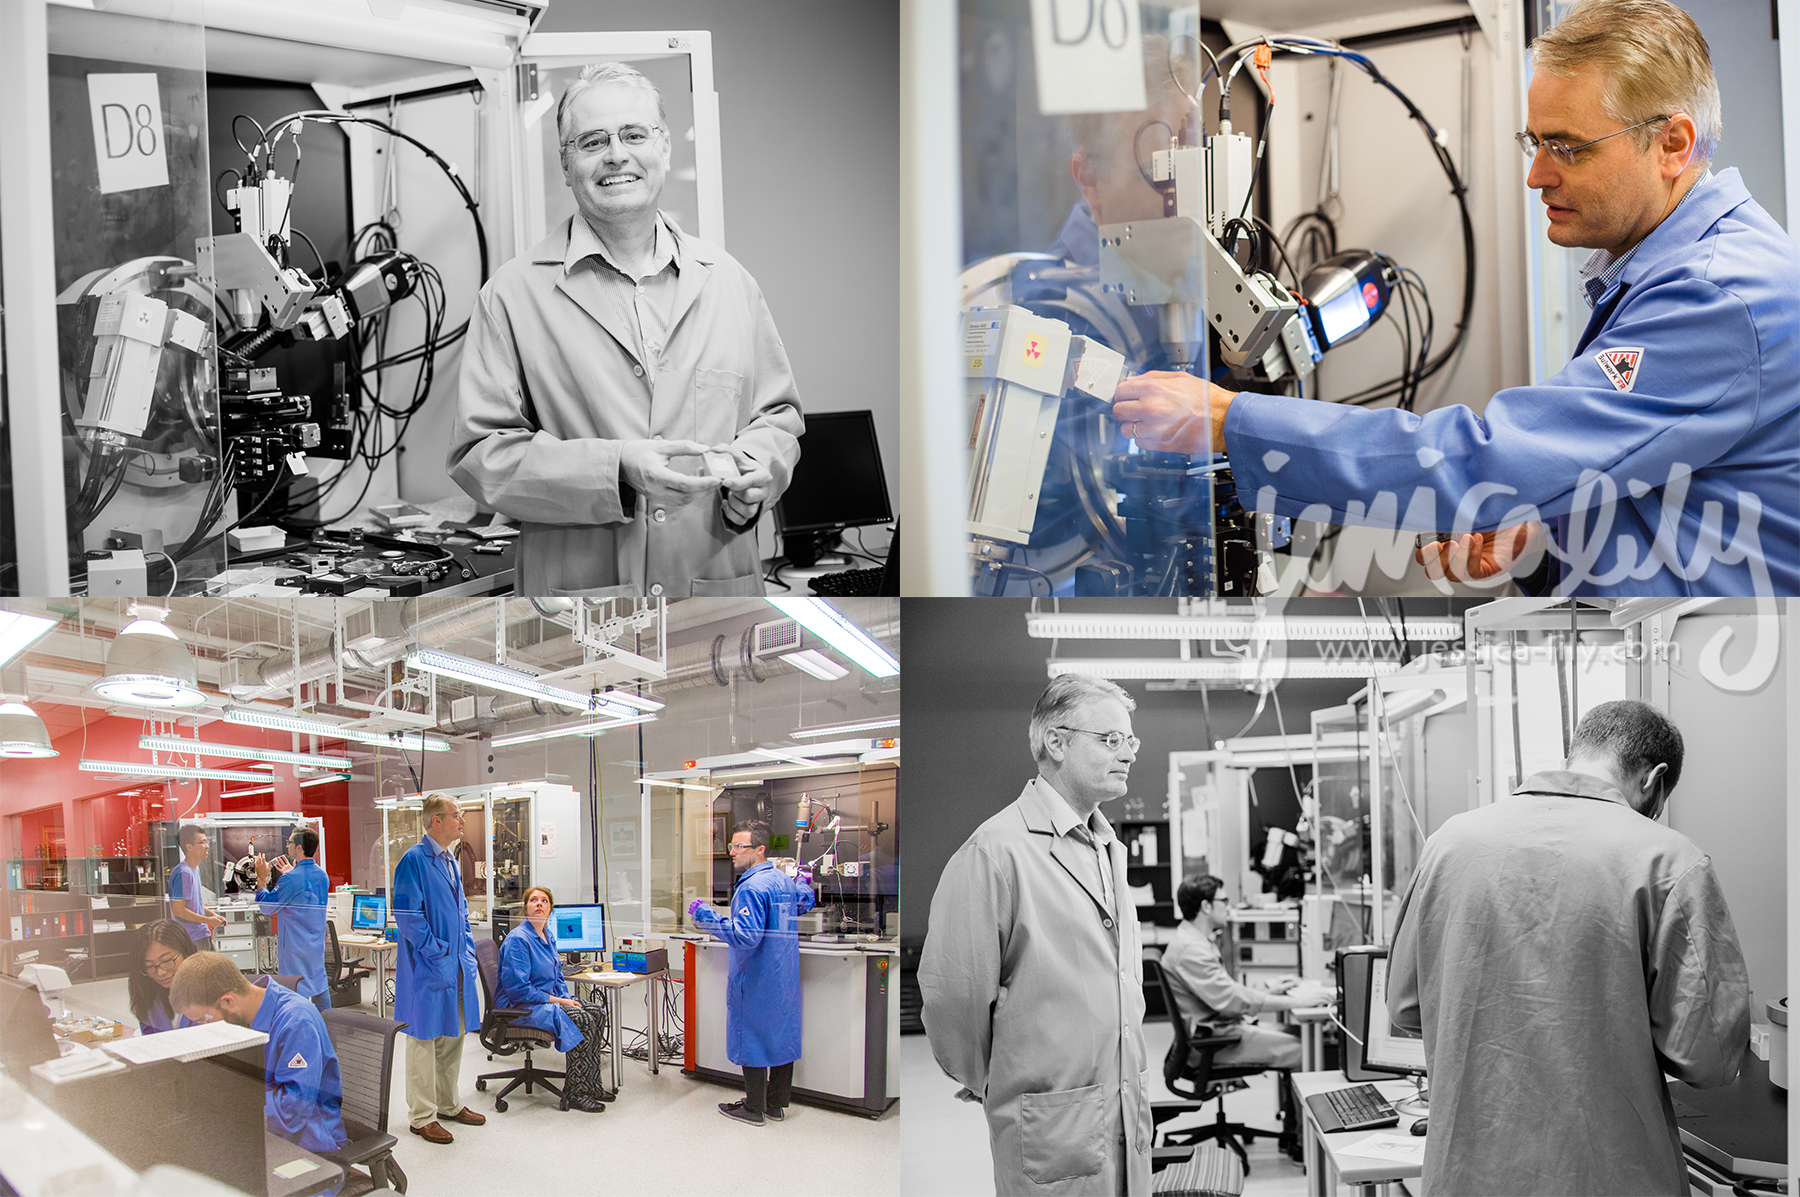 Emory University Chemistry with Dir. John Basca by Jessica Lily - Images that Capture the Essence of Your Work